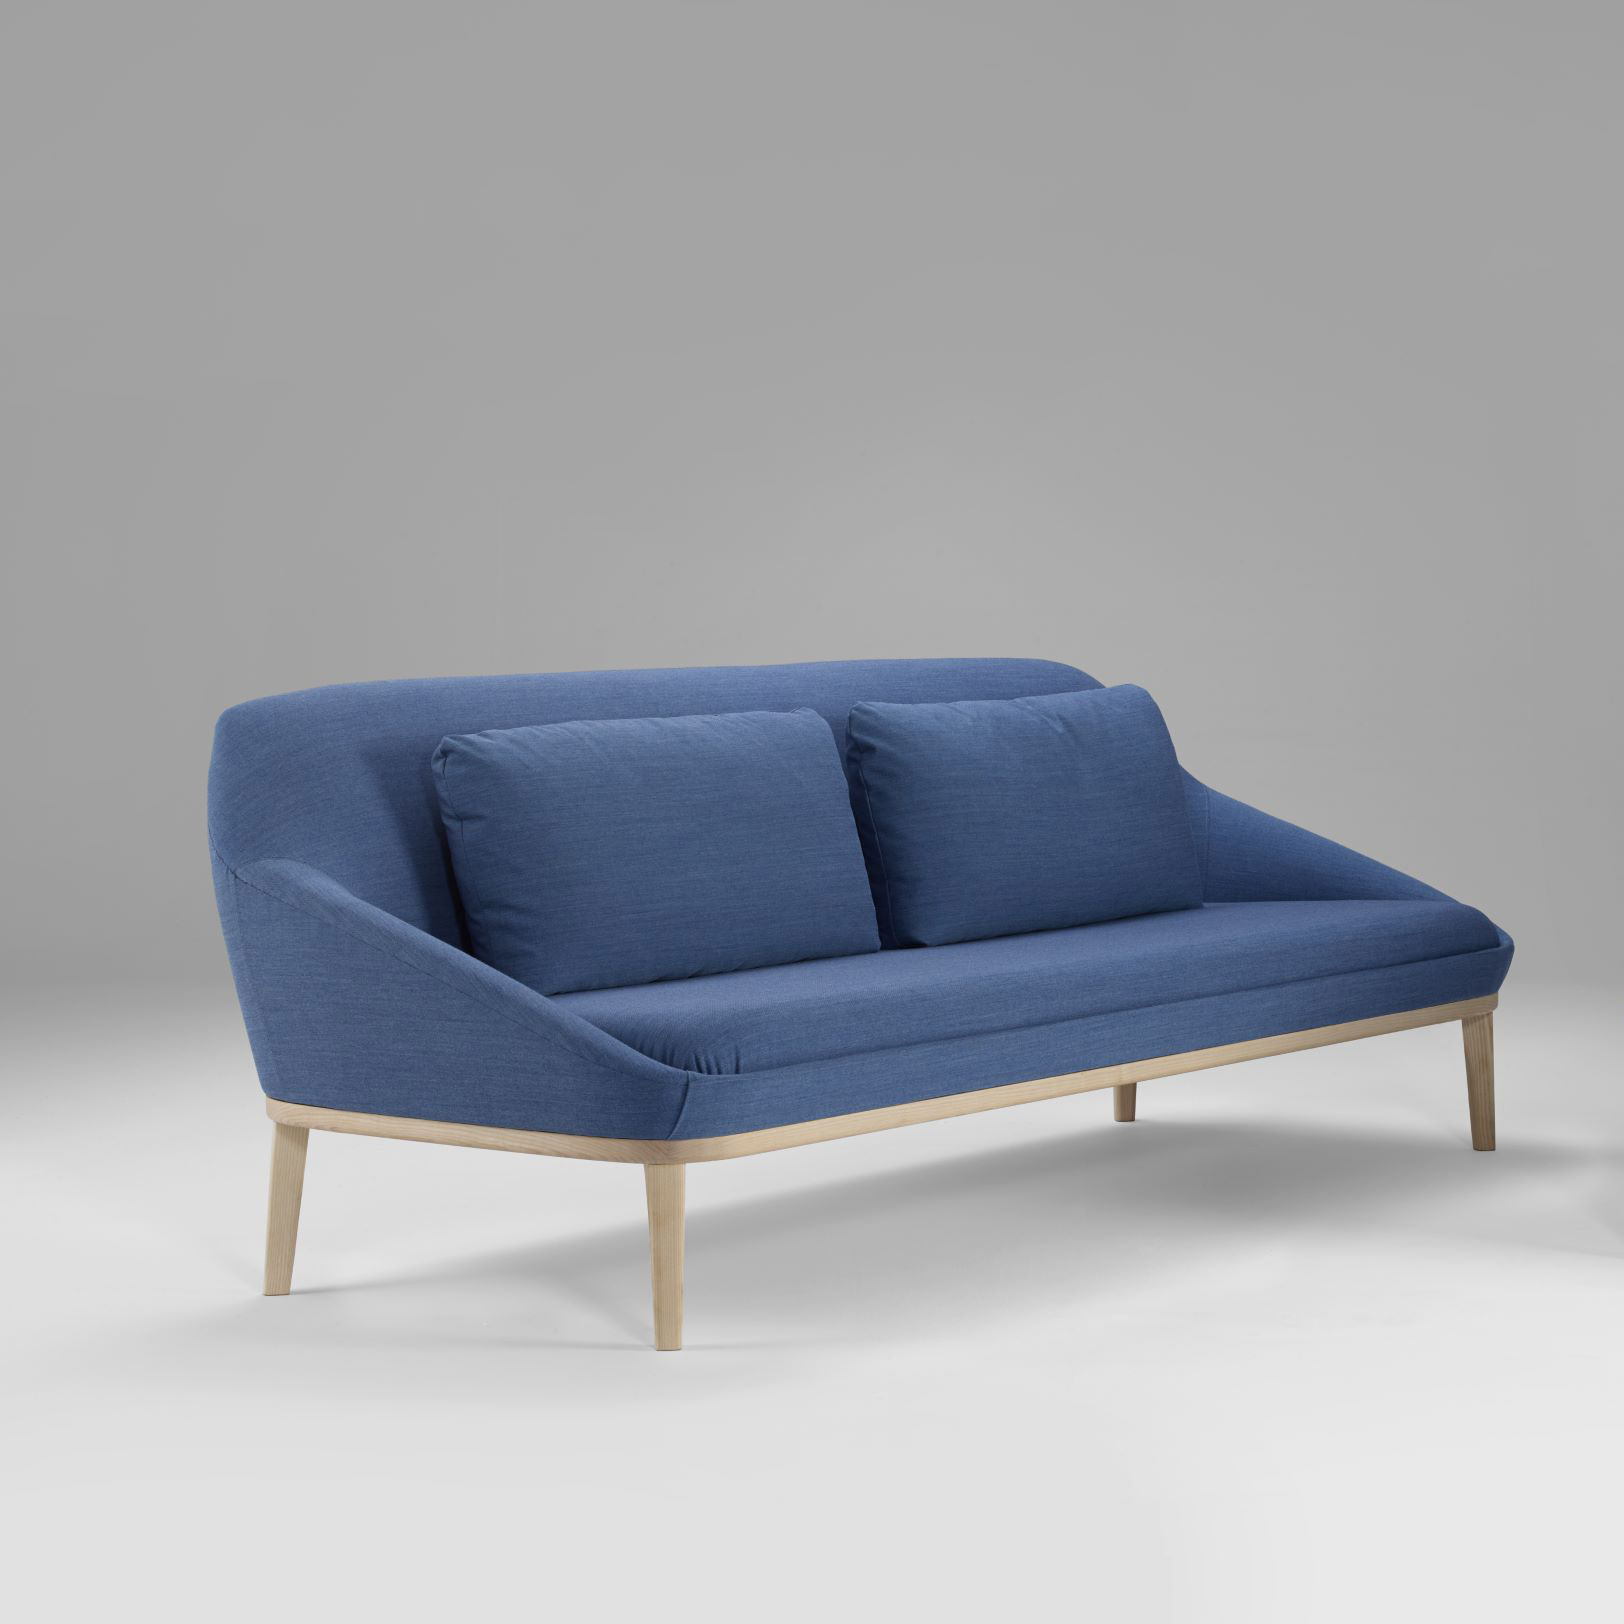 Futon Factory Paris Ezy Wood Modern Sofa Furniture By Christophe Pillet Offecct